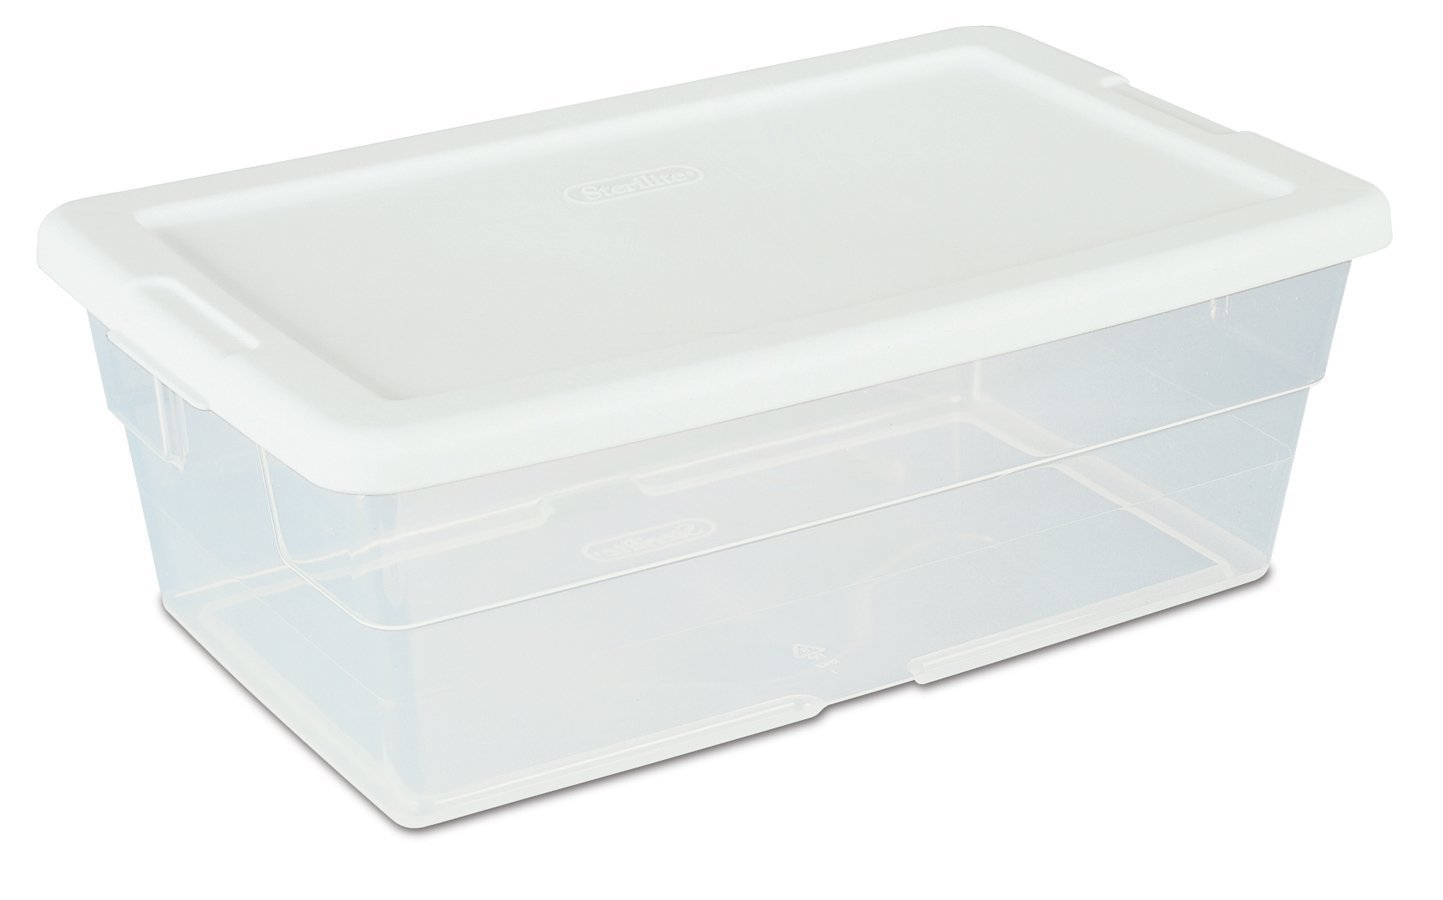 6-Quart See-Through Storage Box with White Secure Fit Lid, 12-Pack